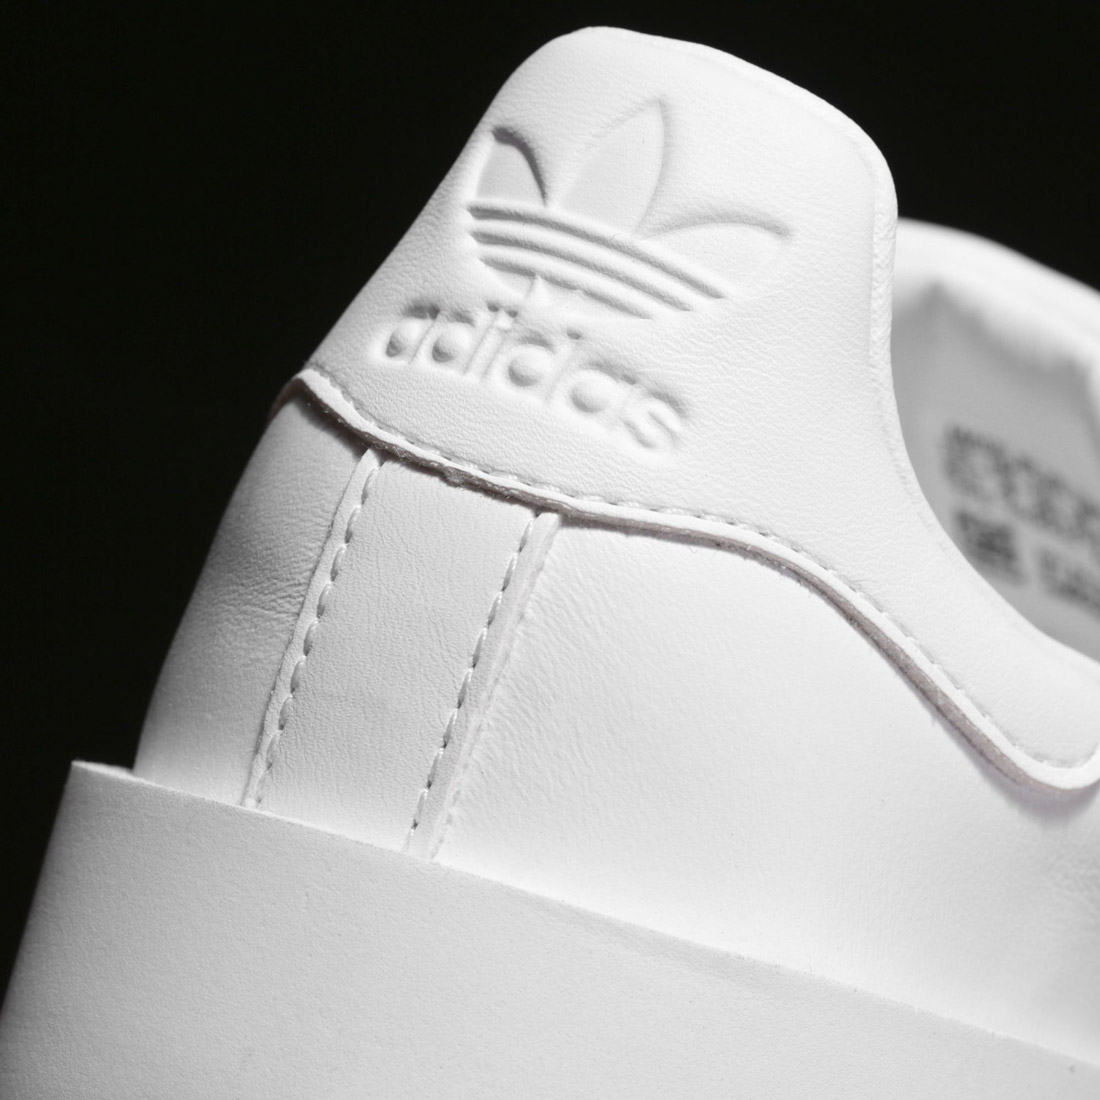 adidas Originals Superstar Bold — detail